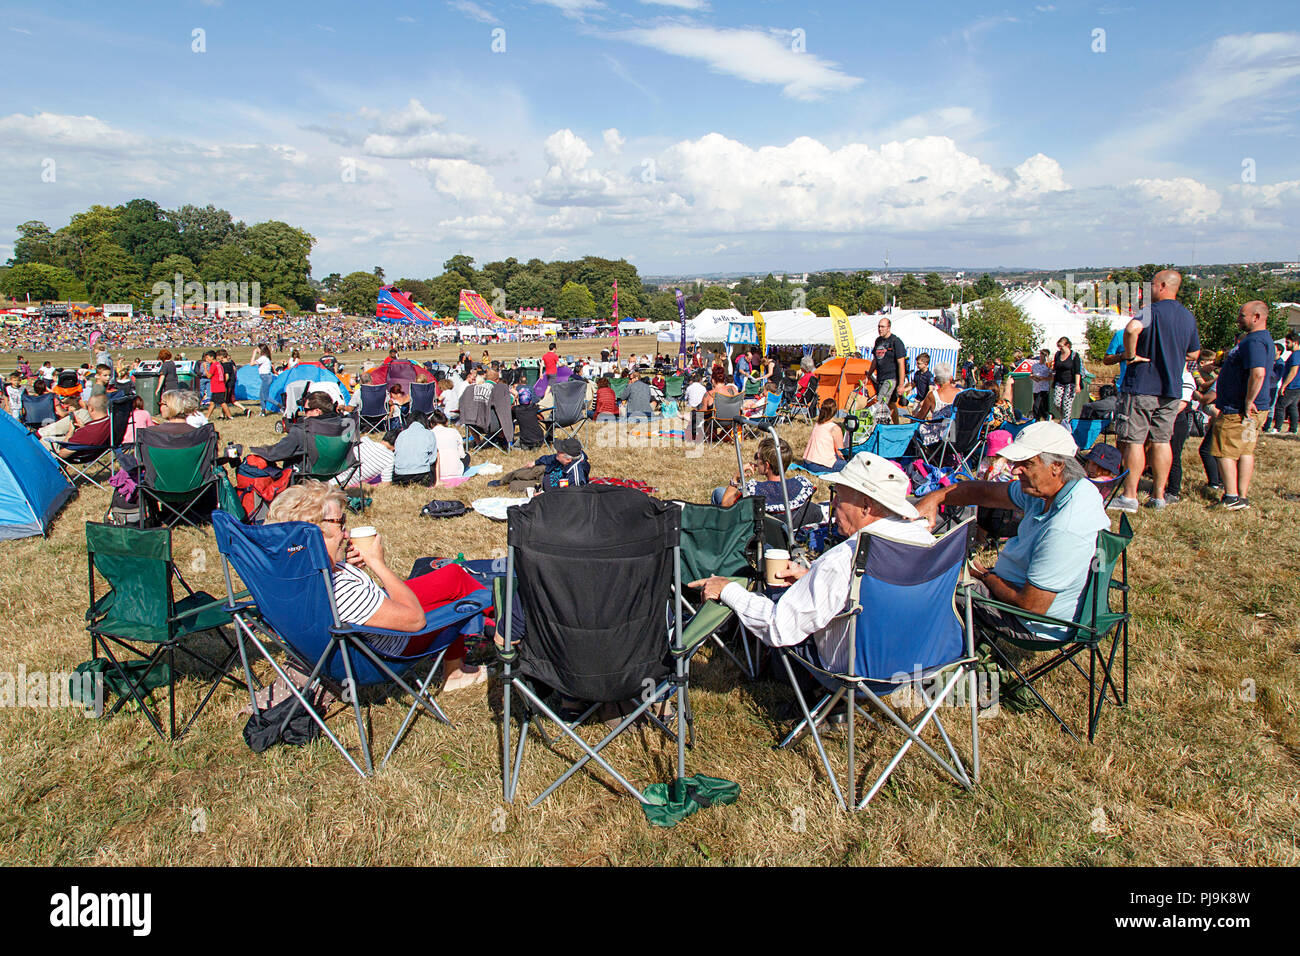 Bristol, UK: August 09, 2018: A group of mature adults sit on camping chairs at Bristol International Balloon Fiesta. - Stock Image